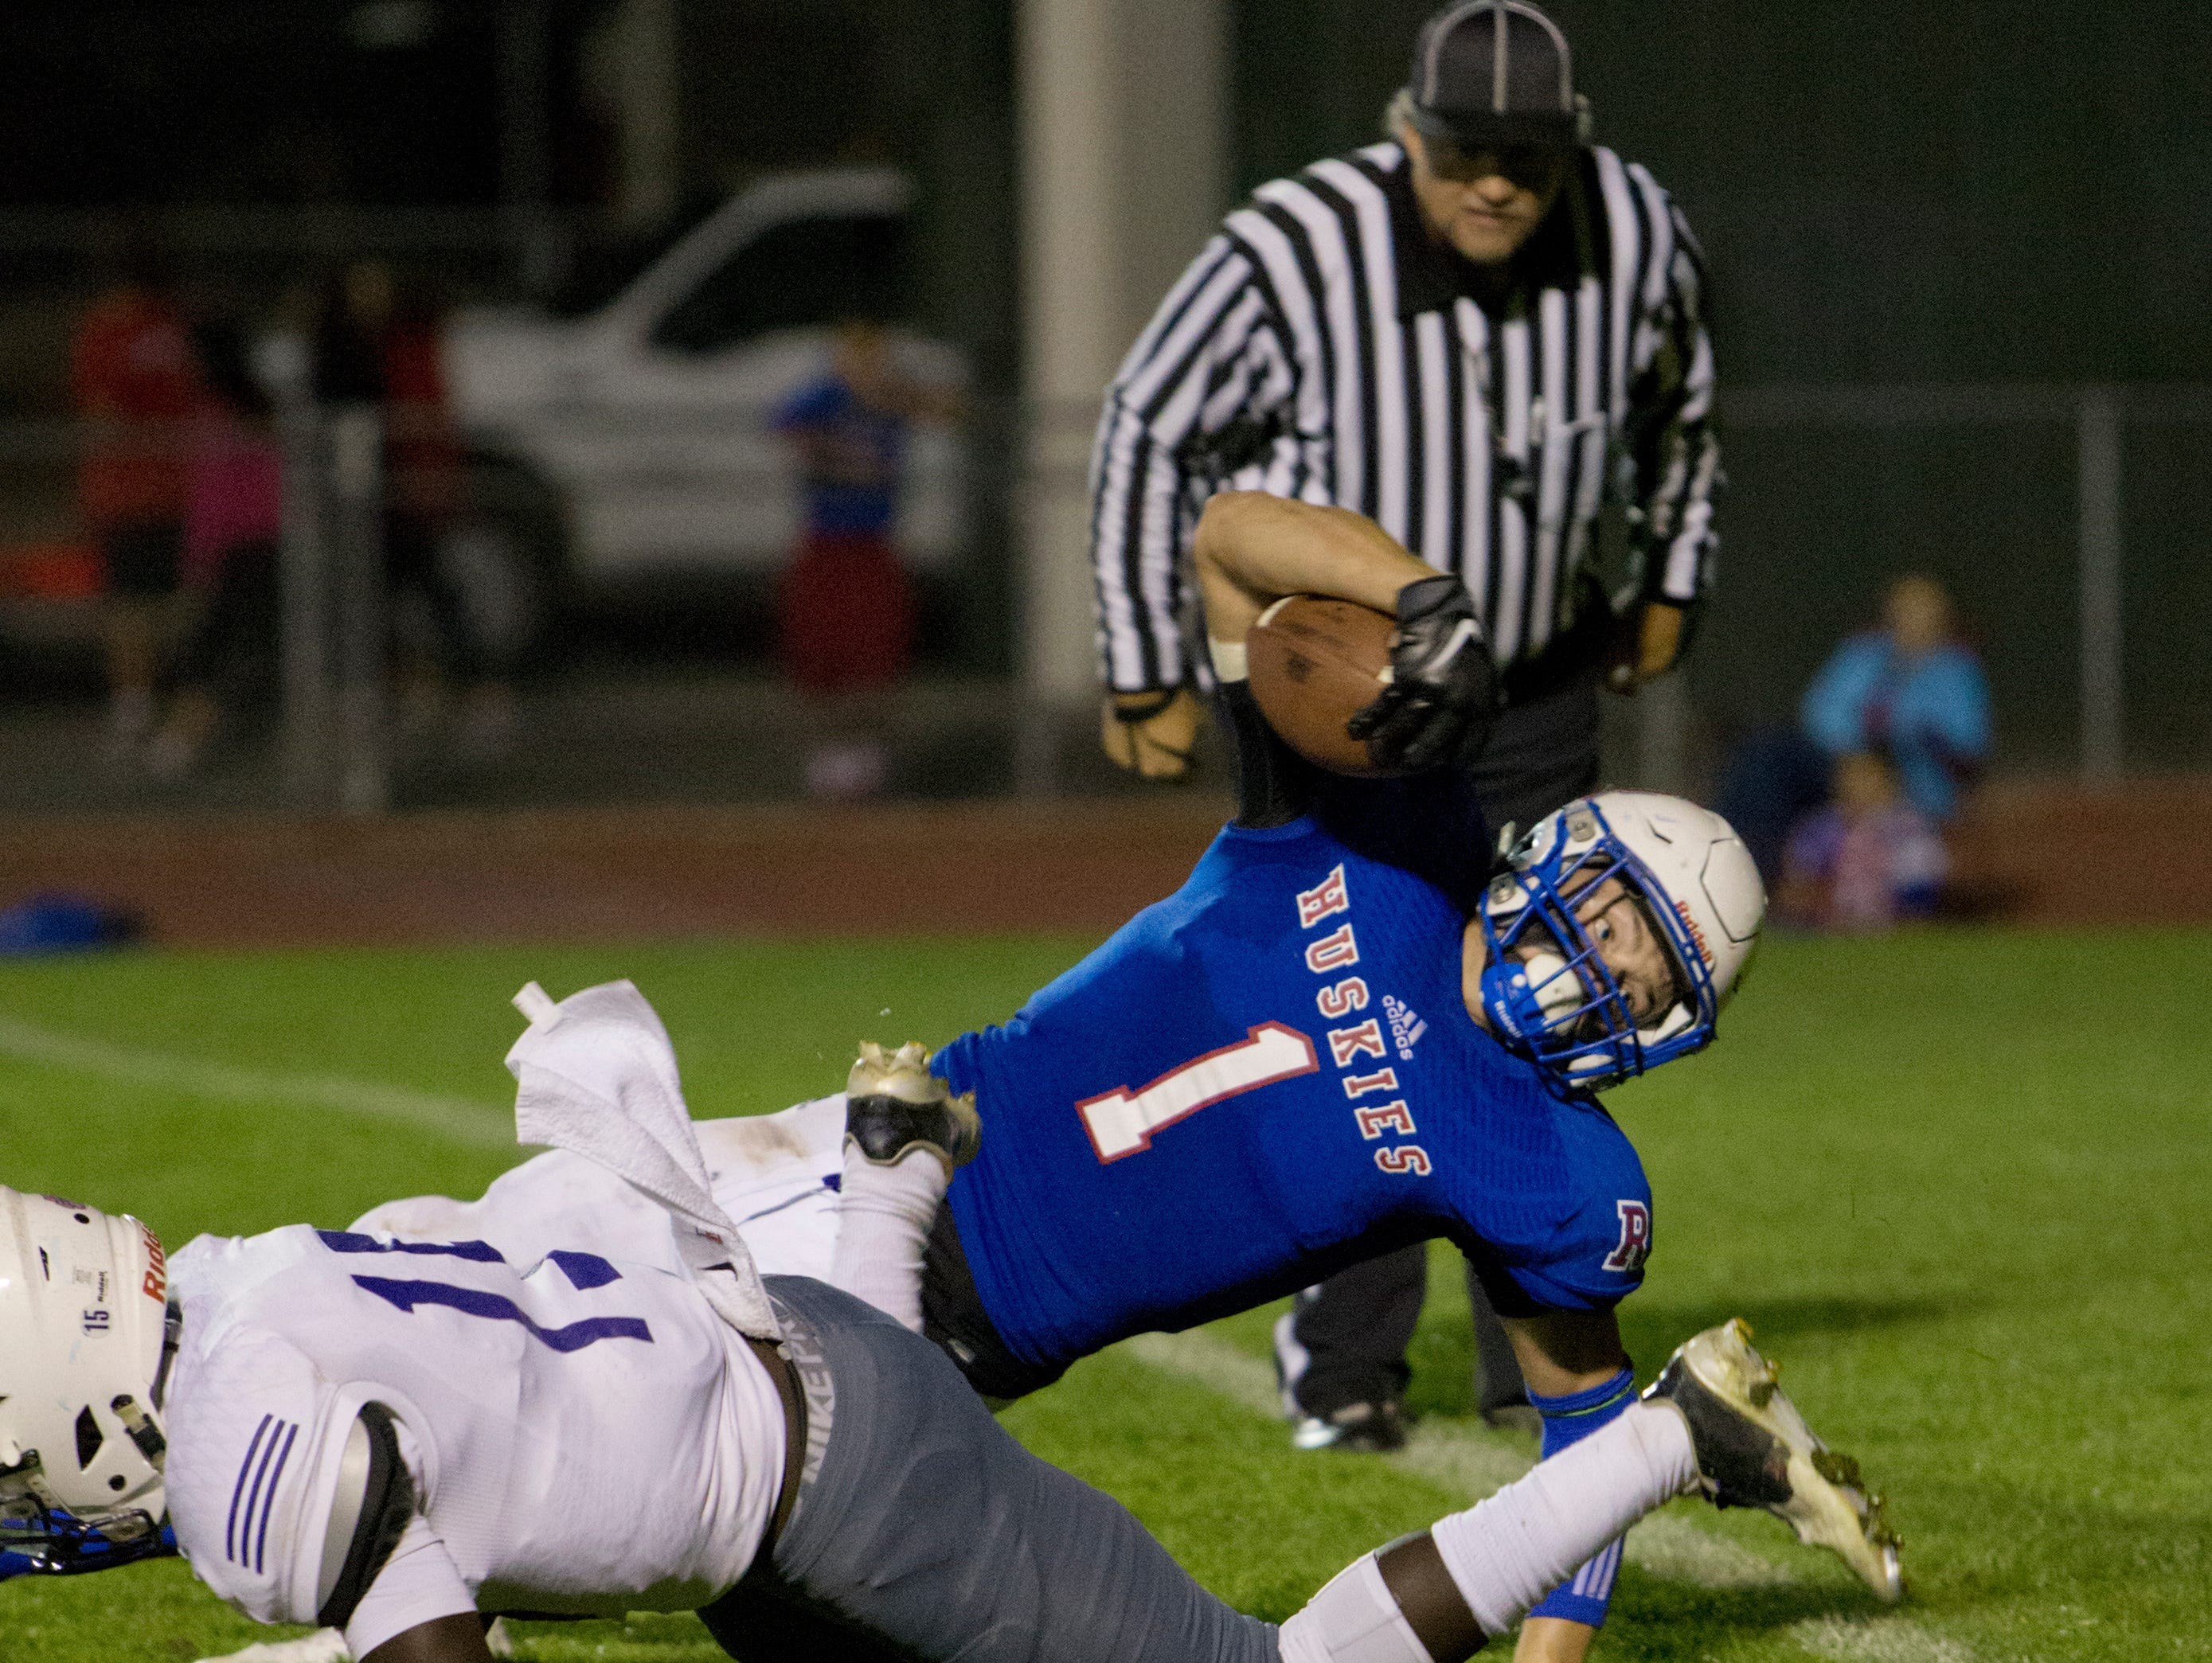 Reno Huskies quarterback Isaac Terrasas dives into the endzone for a touchdown in the second quarter against Spanish Springs Cougars during their football game played on Friday, October 16, 2015 at Reno High School in Reno, Nevada.